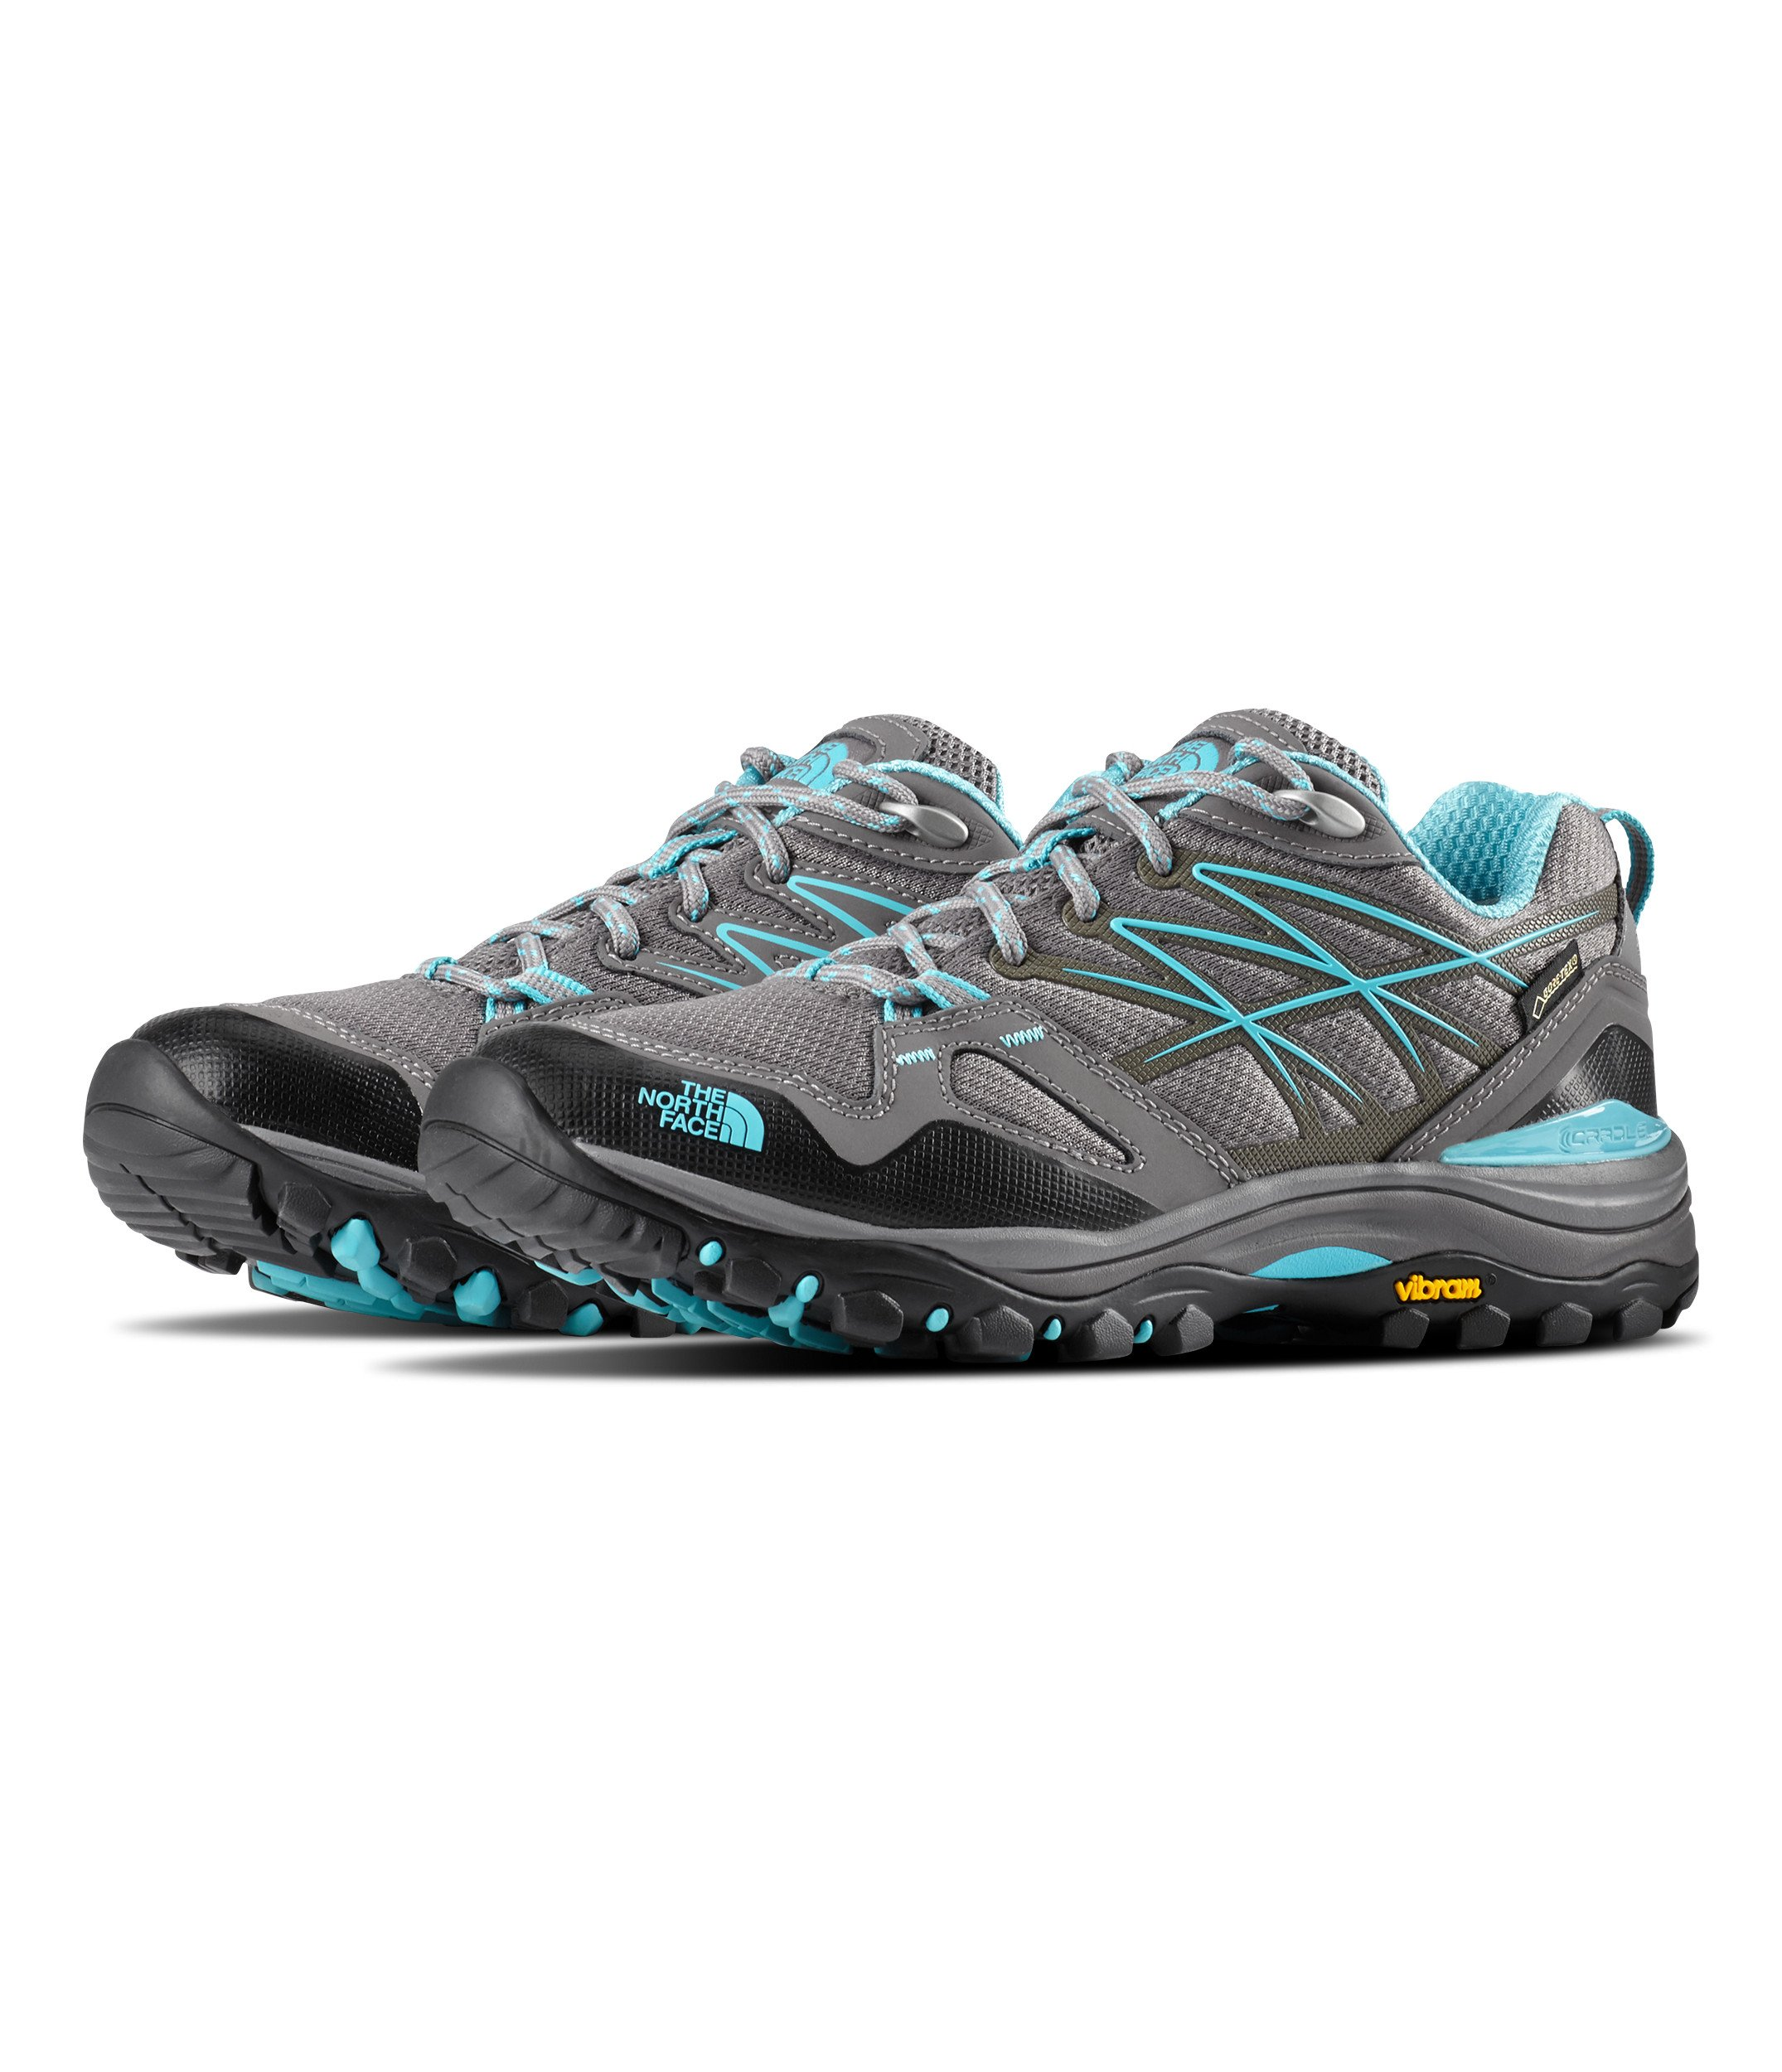 The North Face Women's Hedgehog Fastpack Gore-Tex - Dark Gull Grey & Fortuna Blue - 8 by The North Face